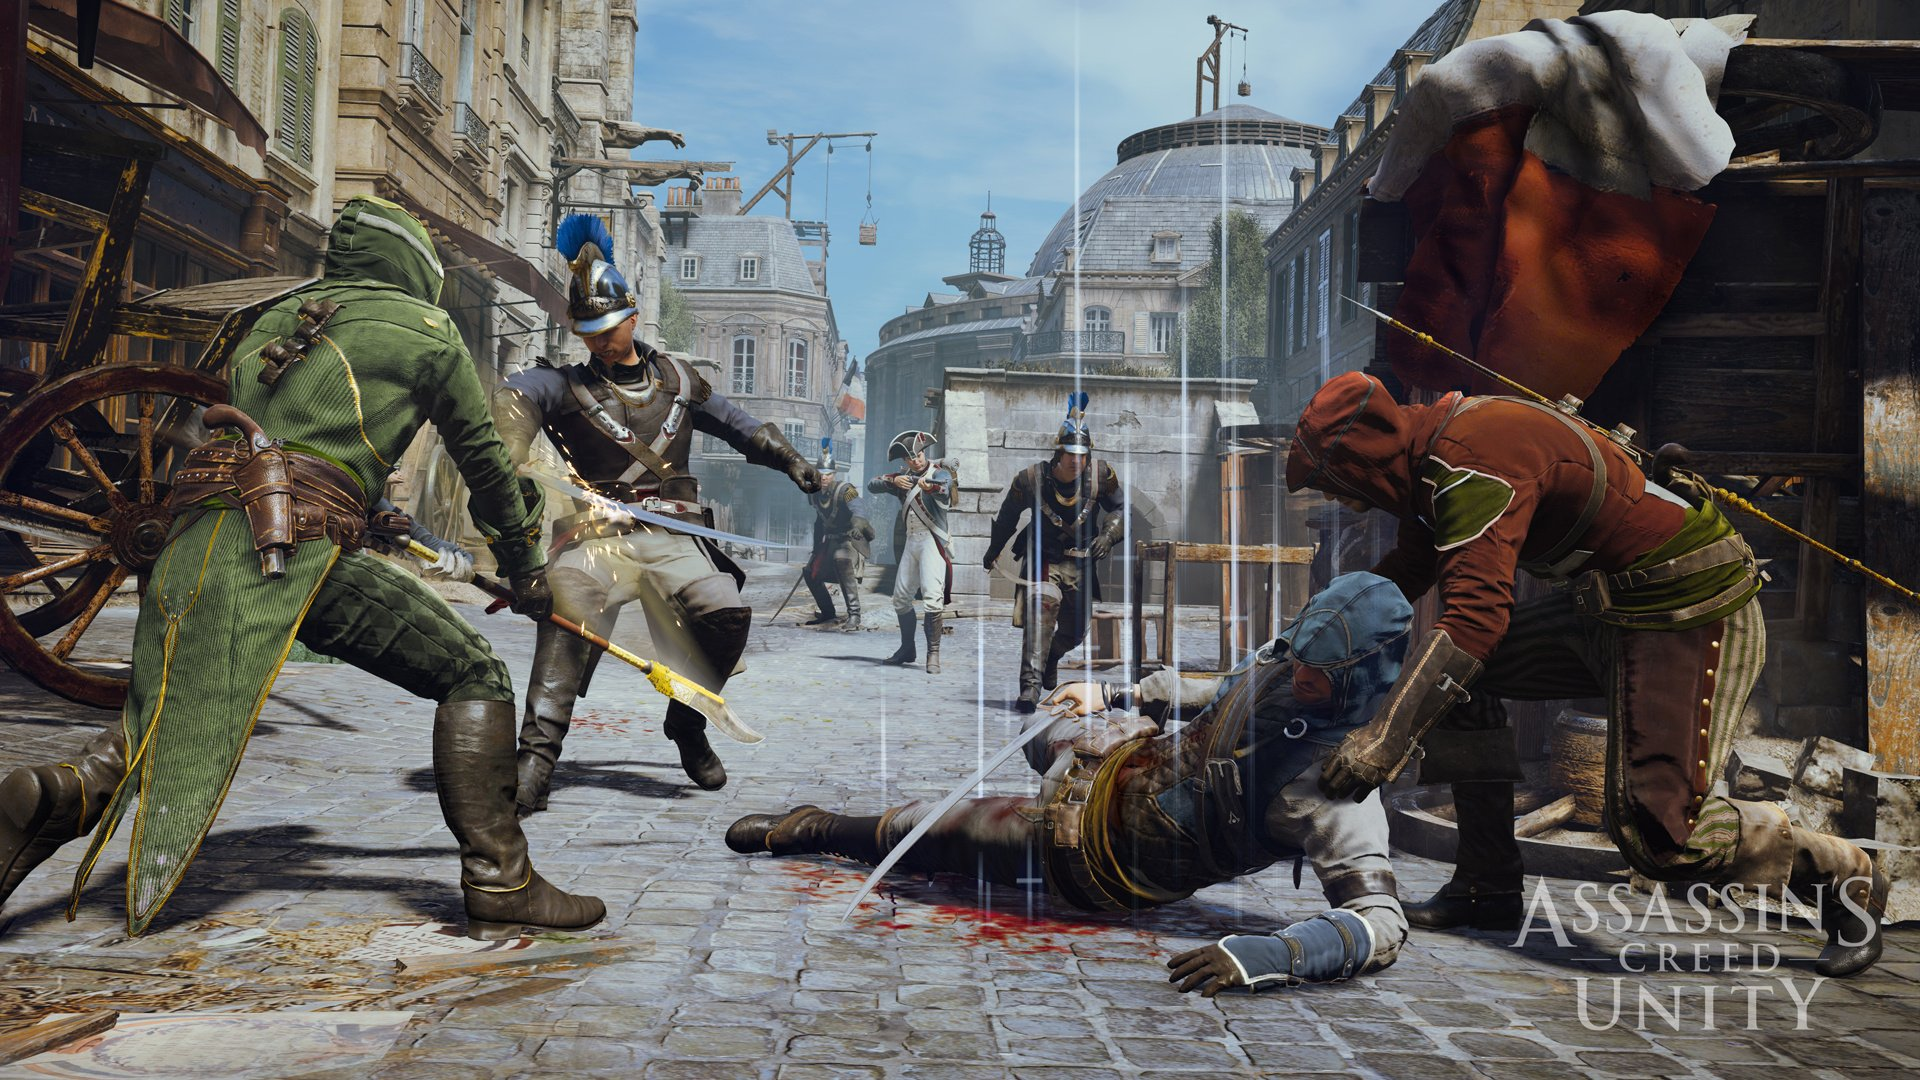 Assassin s creed unity review next available slot assassin s creed - Divided You Ll Fall When You Load Up An Assassin S Creed Title